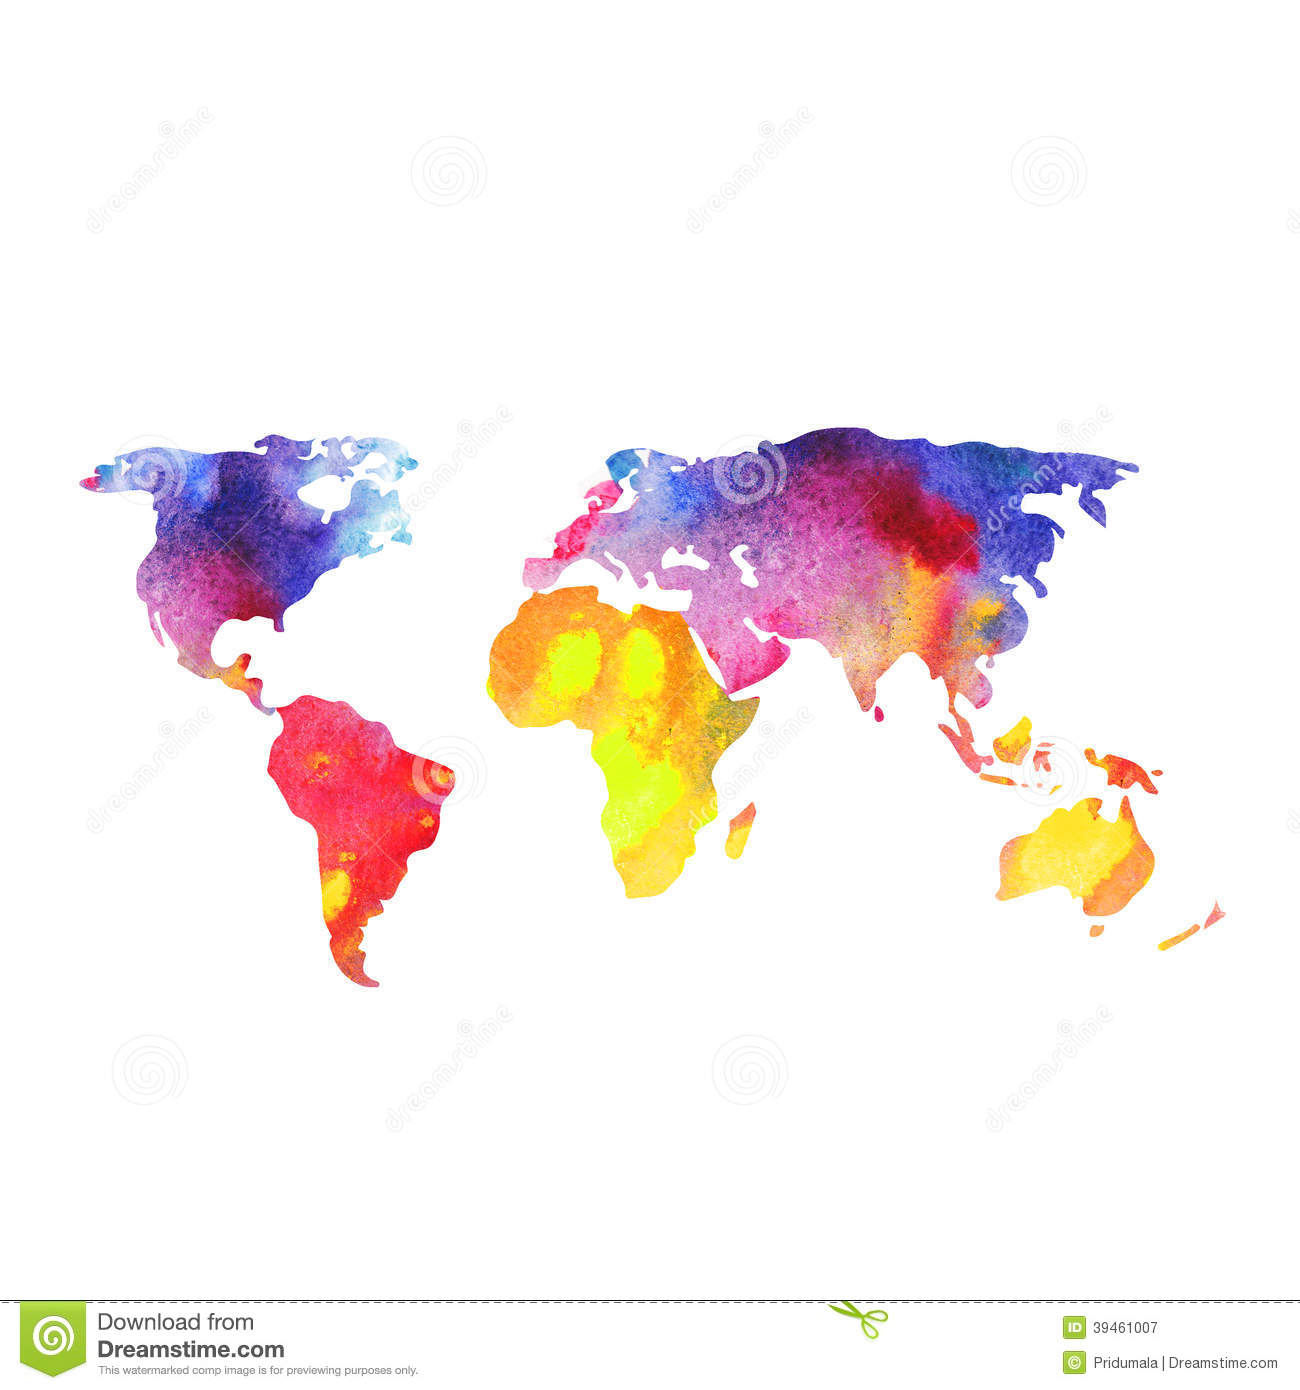 World: World Map Painted With Watercolors, Painted World Map On